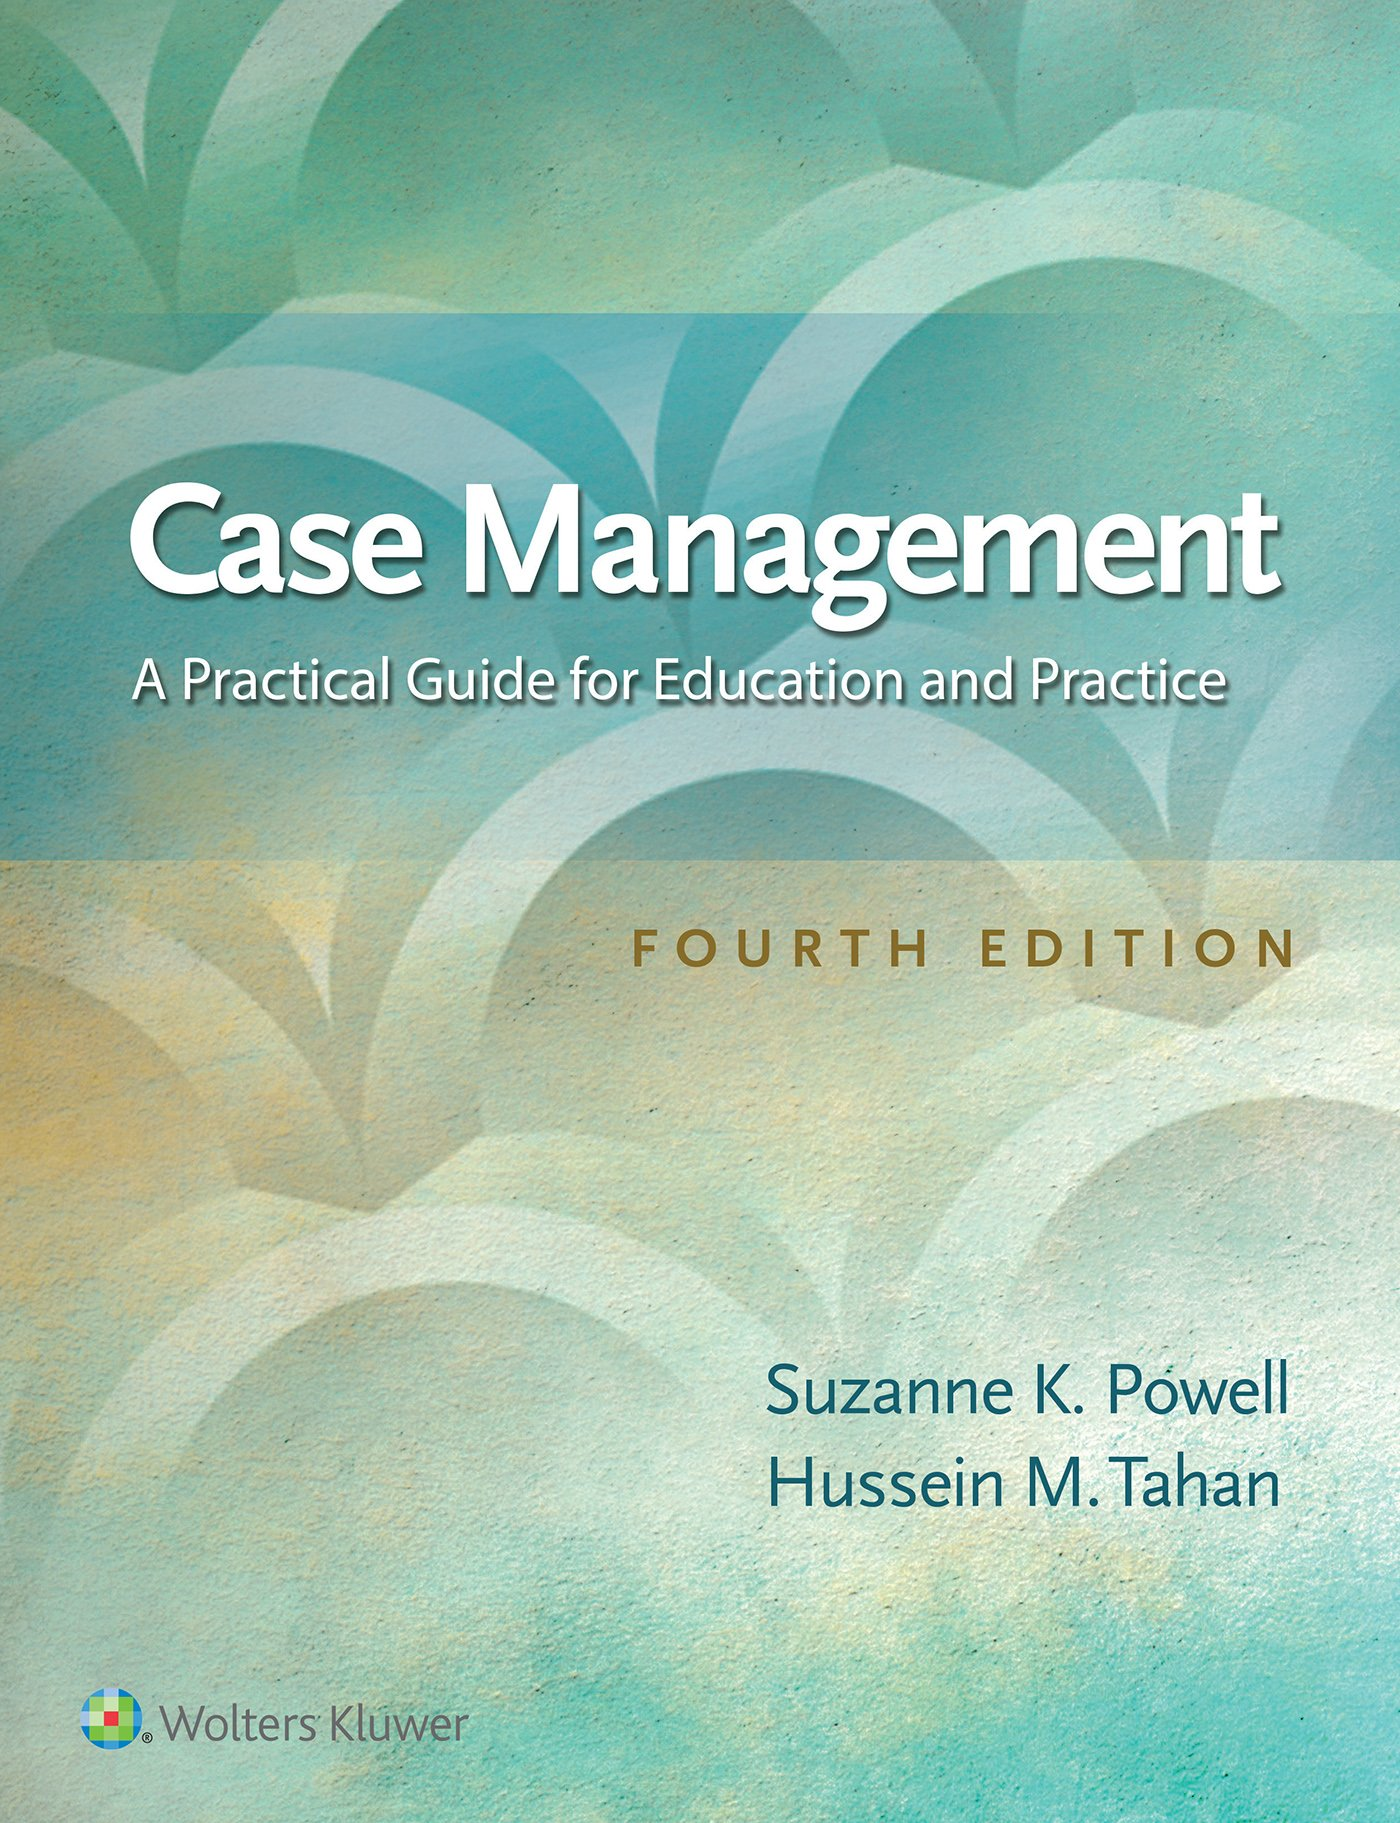 Case Management: A Practical Guide for Education and Practice